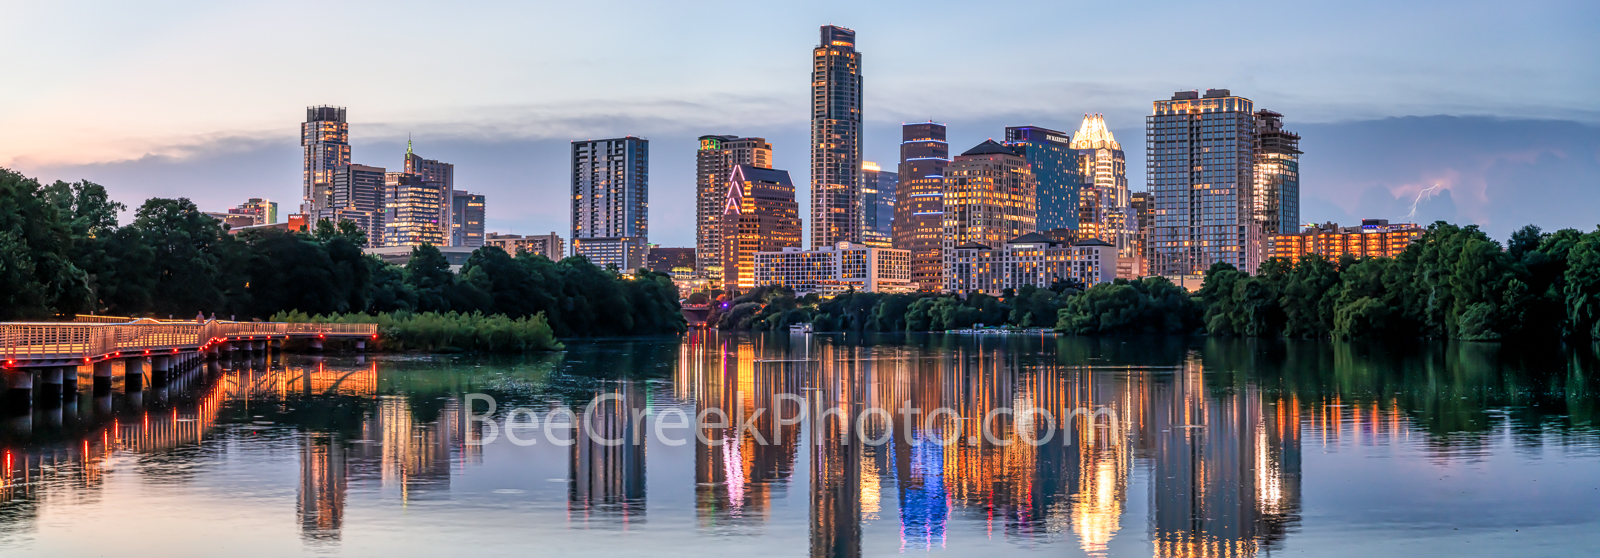 texas, austin skyline, downtown austin, austin downtown, twilight, architecture, city, ladybird lake, landscape, reflection, panorama, pano, panoramic,, photo